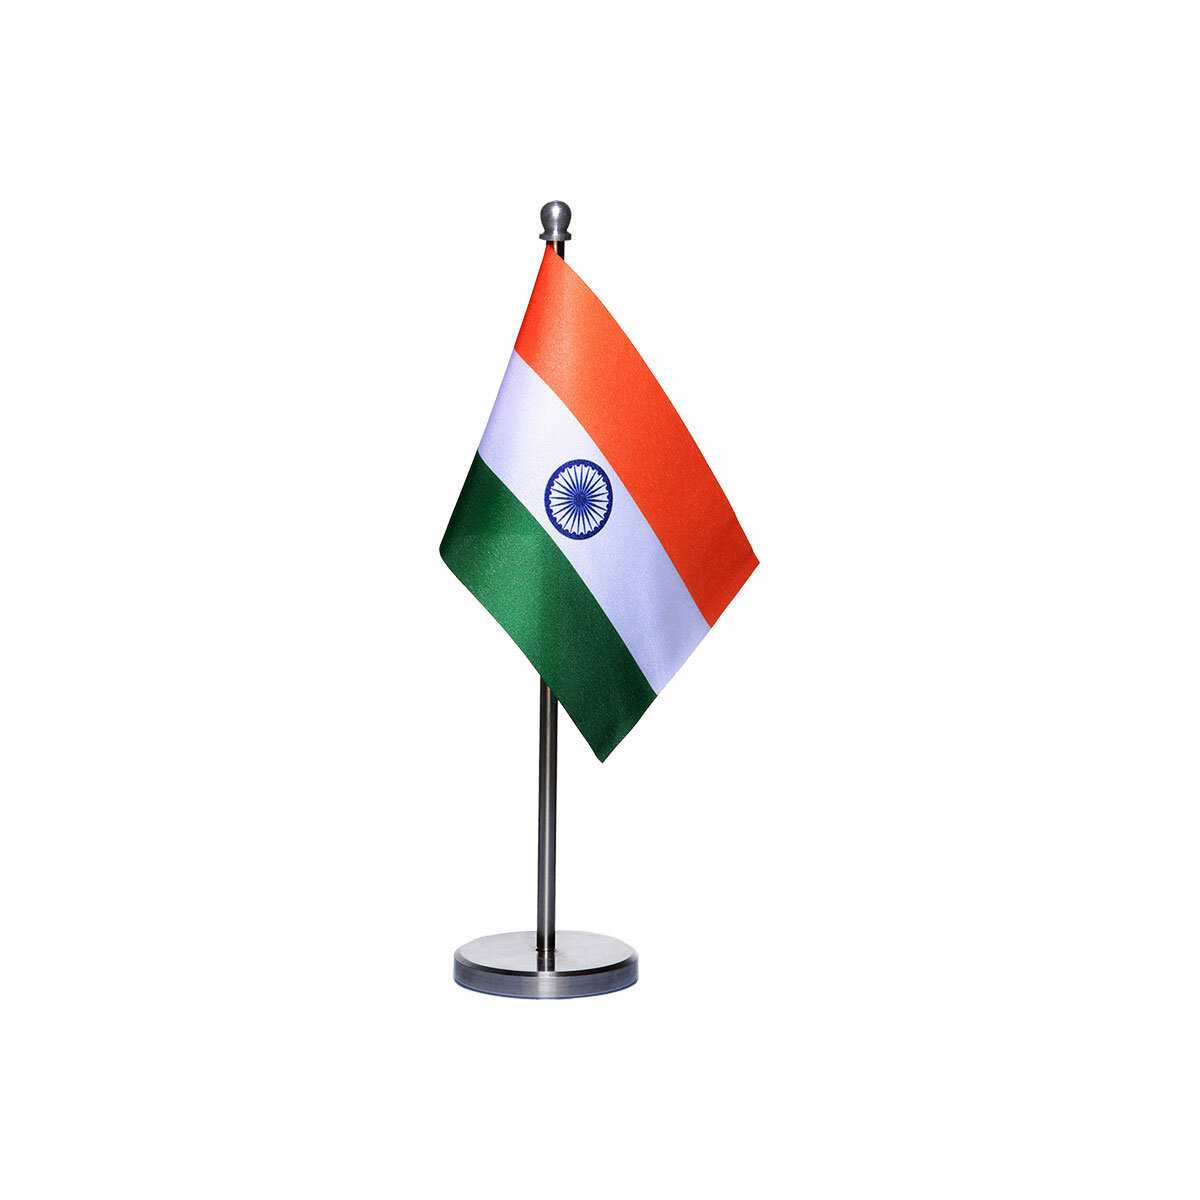 india table or desk flag with a stainles steel stand / base